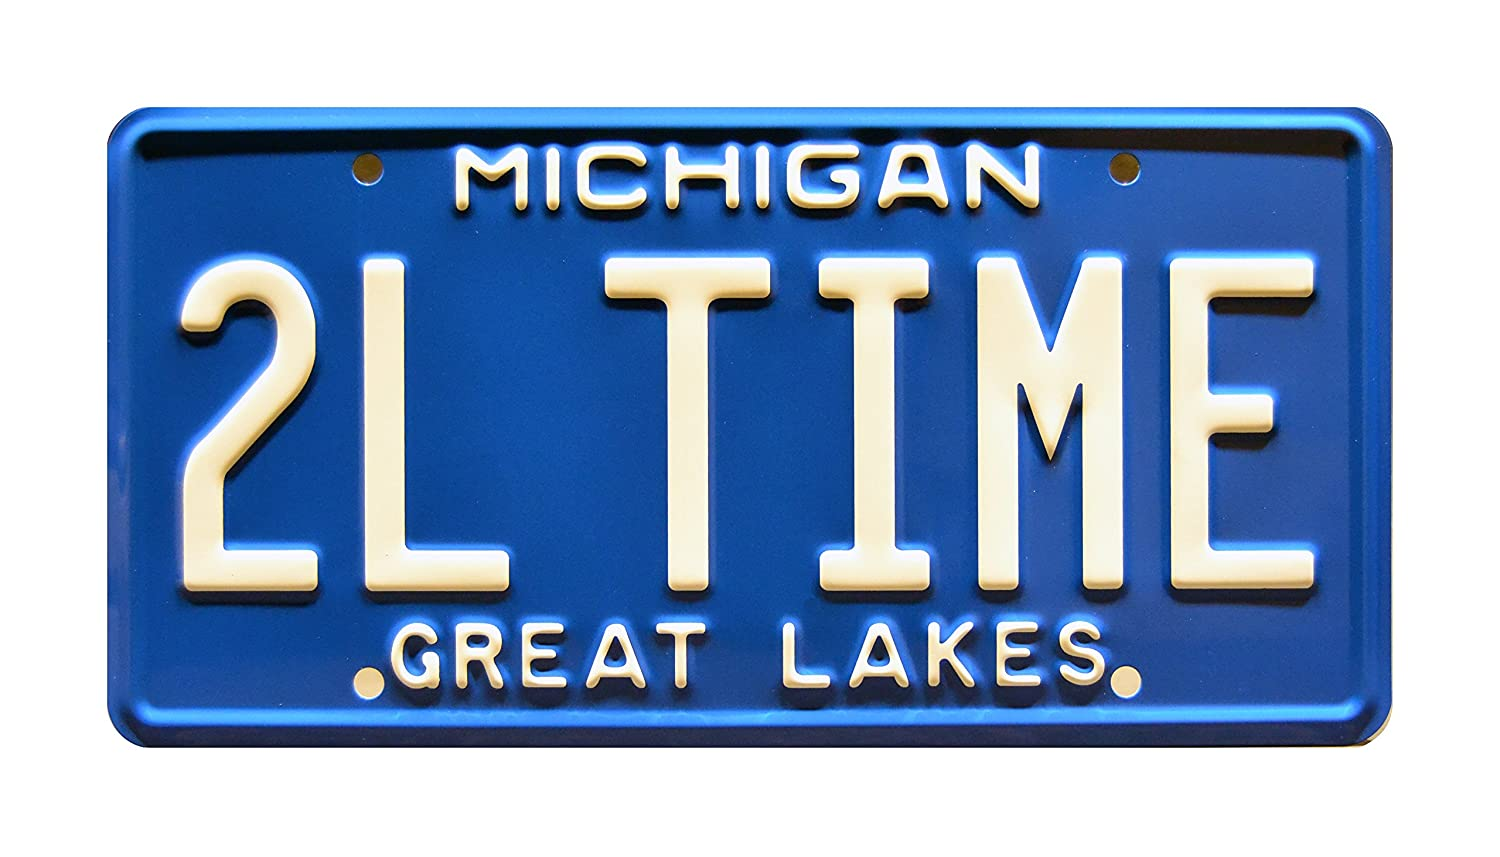 Home Improvement   Tim Allen' s Ford Roadster   TOOL TIME   Metal Stamped Vanity Prop License Plate Celebrity Machines 2LTIME